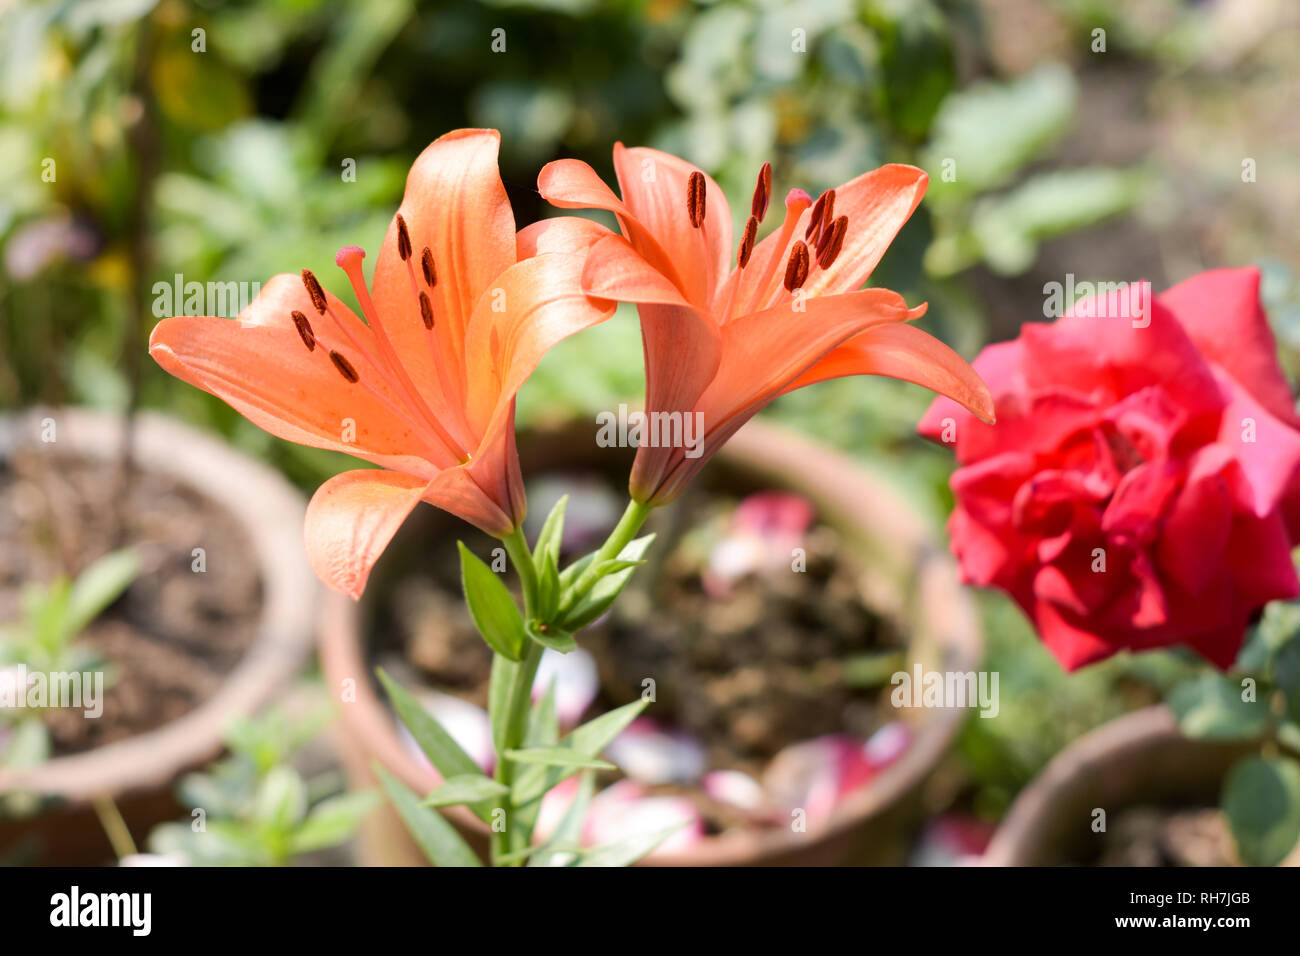 A branch of Trumpet vine or trumpet creeper (Campsis radicans) flower, known as cow itch or hummingbird vine, in bloom with seeds and leaves, growing  - Stock Image